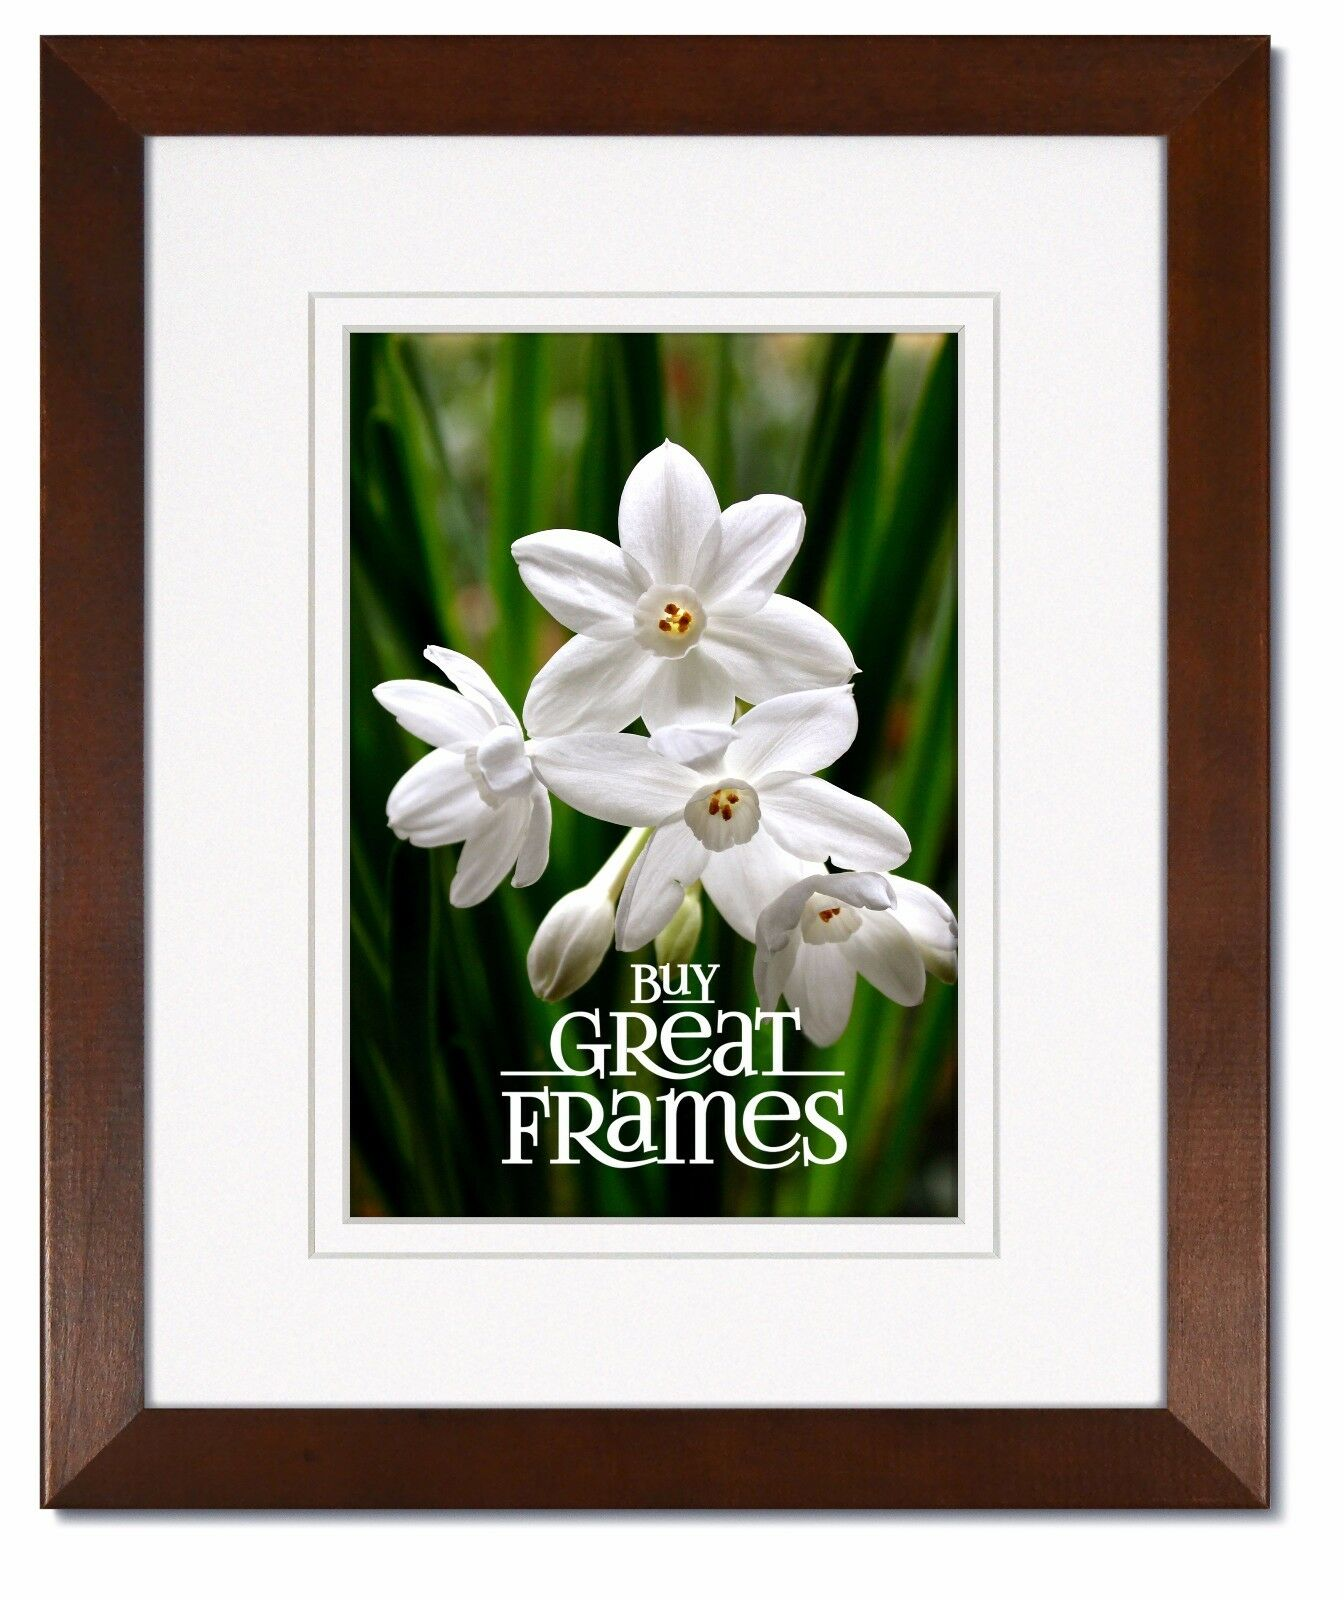 Madeline Walnut Wood Picture Frames with Double White/White